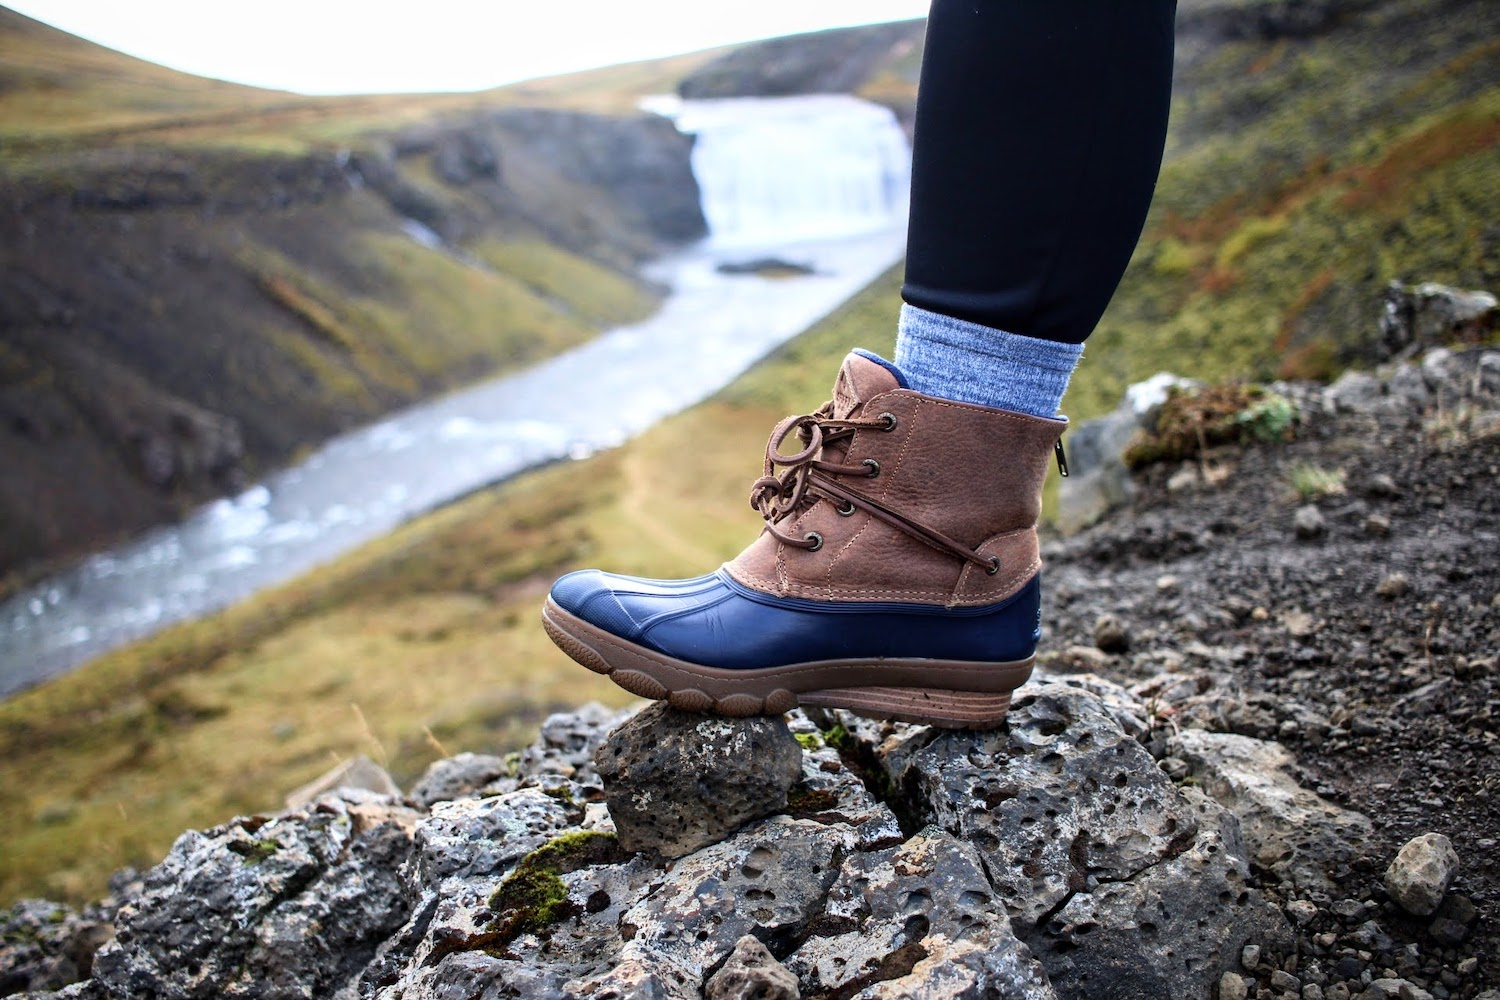 Duck Boots - These are the boots I wore all over Iceland and now all over Nashville. I love them! They are warm, sturdy, and comfortable.